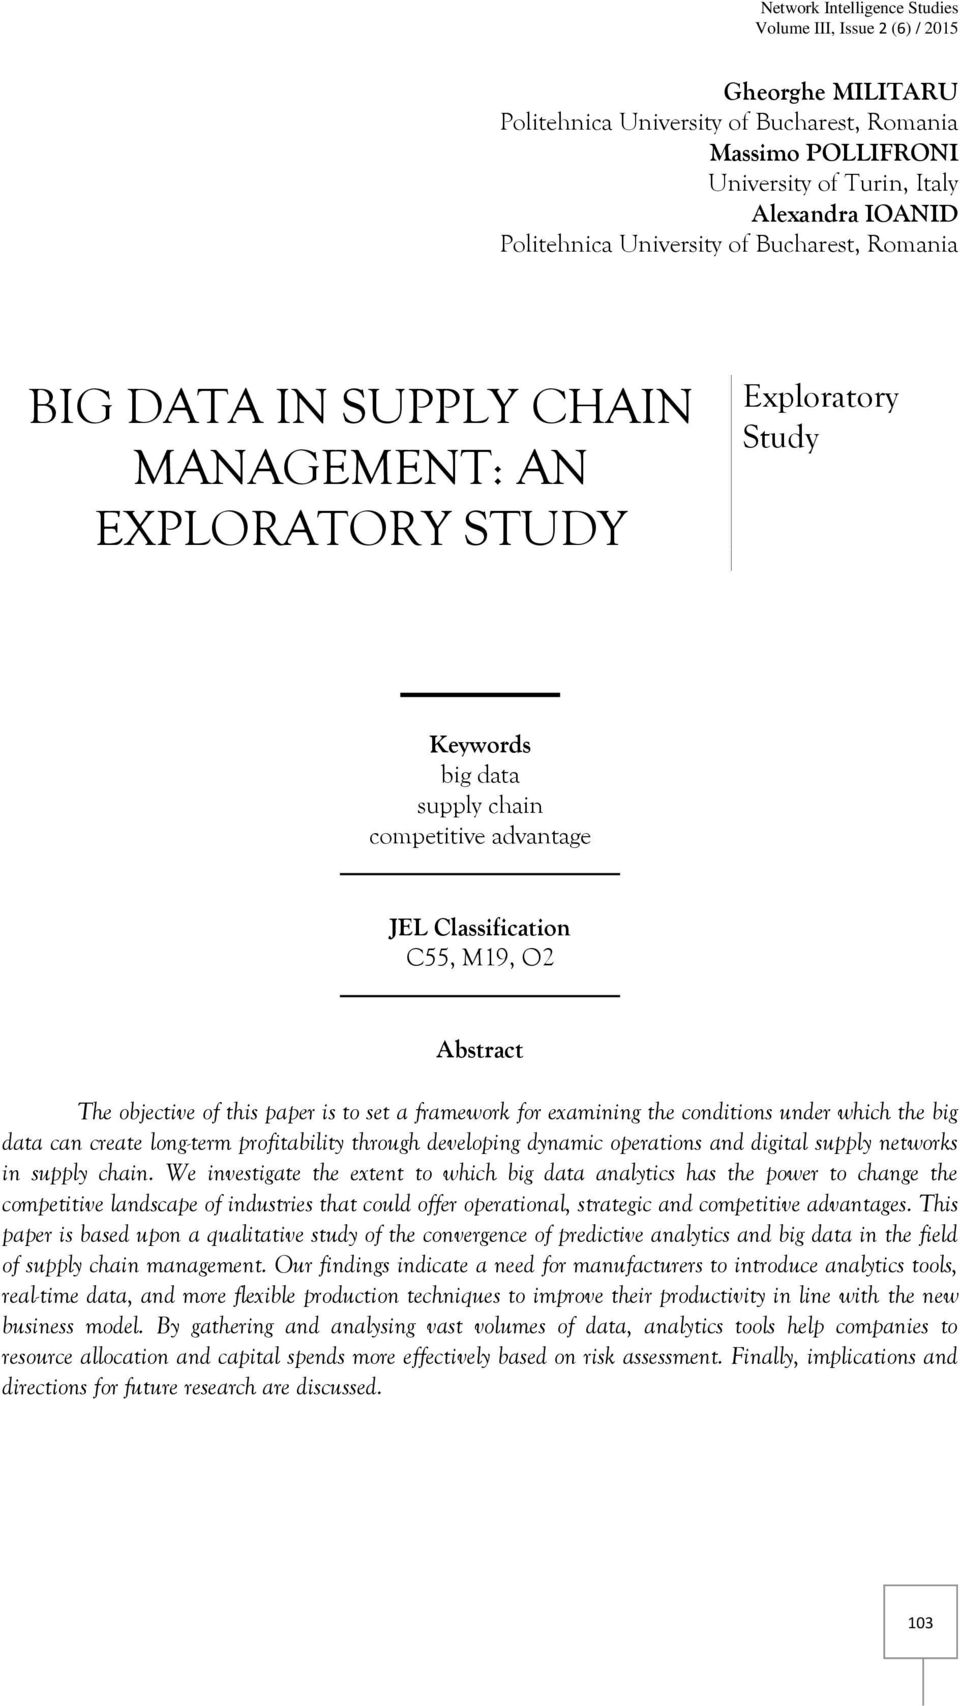 examining the conditions under which the big data can create long-term profitability through developing dynamic operations and digital supply networks in supply chain.